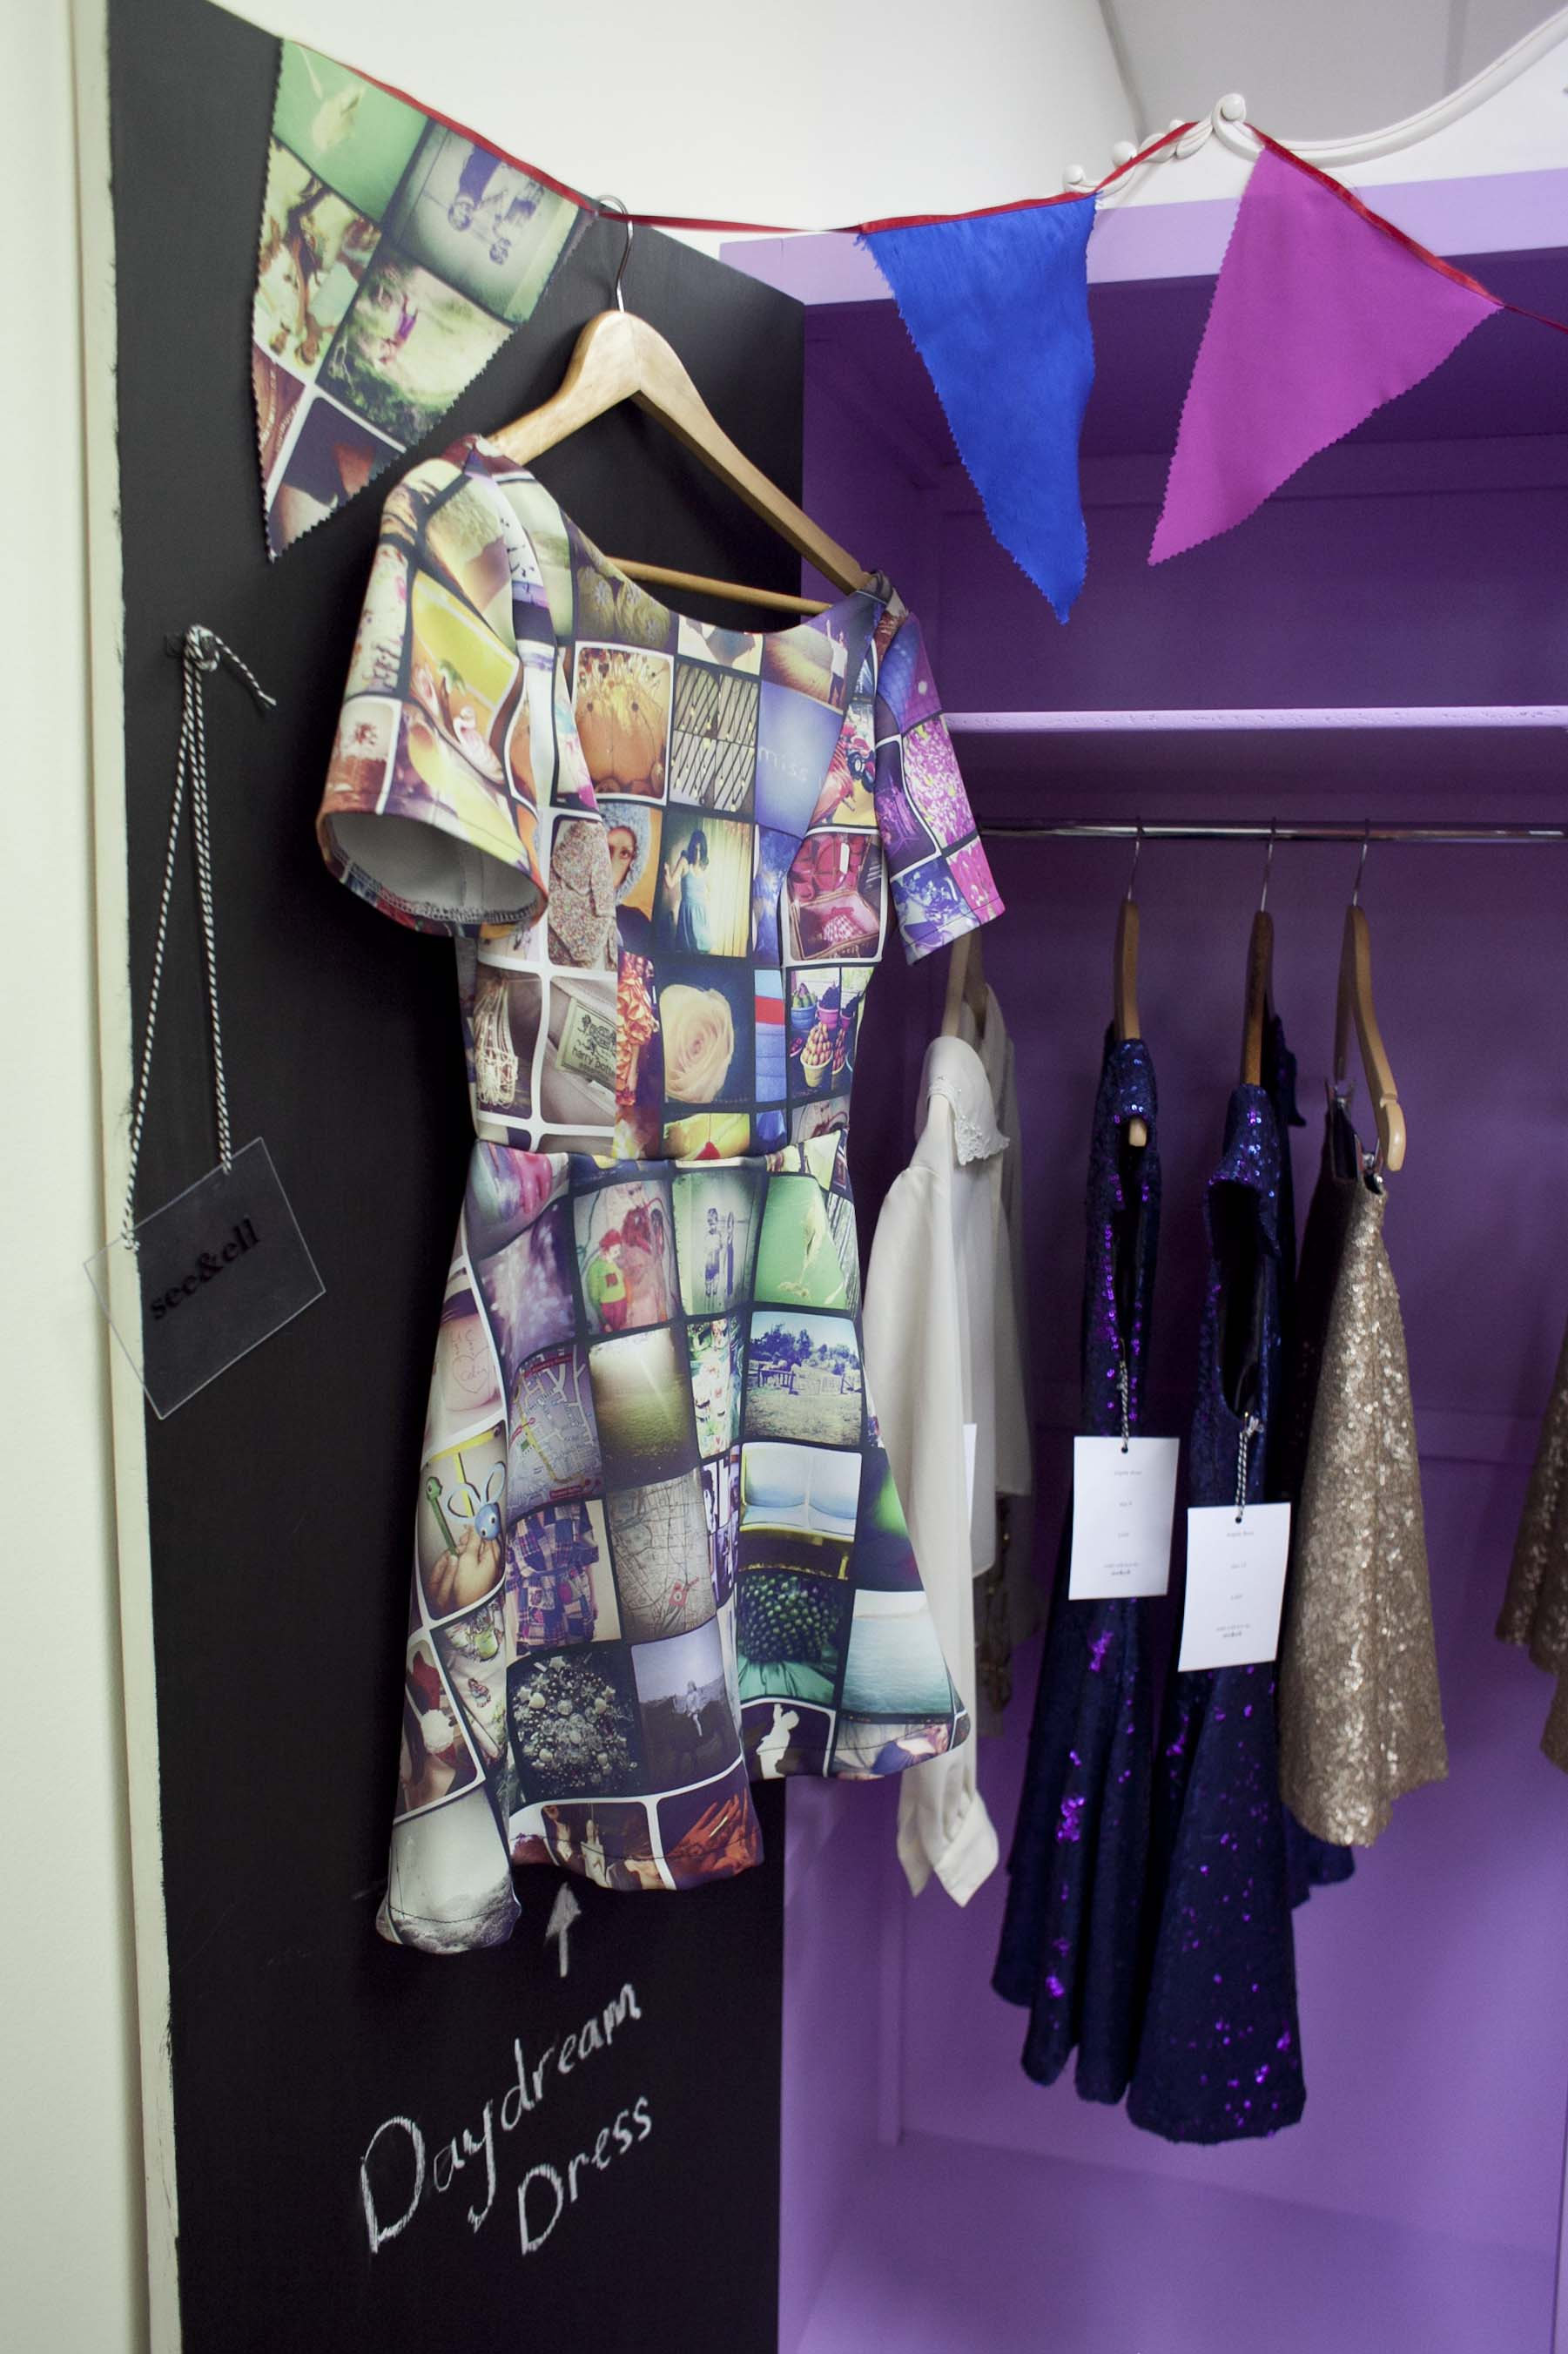 Local label See & Ell by Libby Spring and Celia Fraser